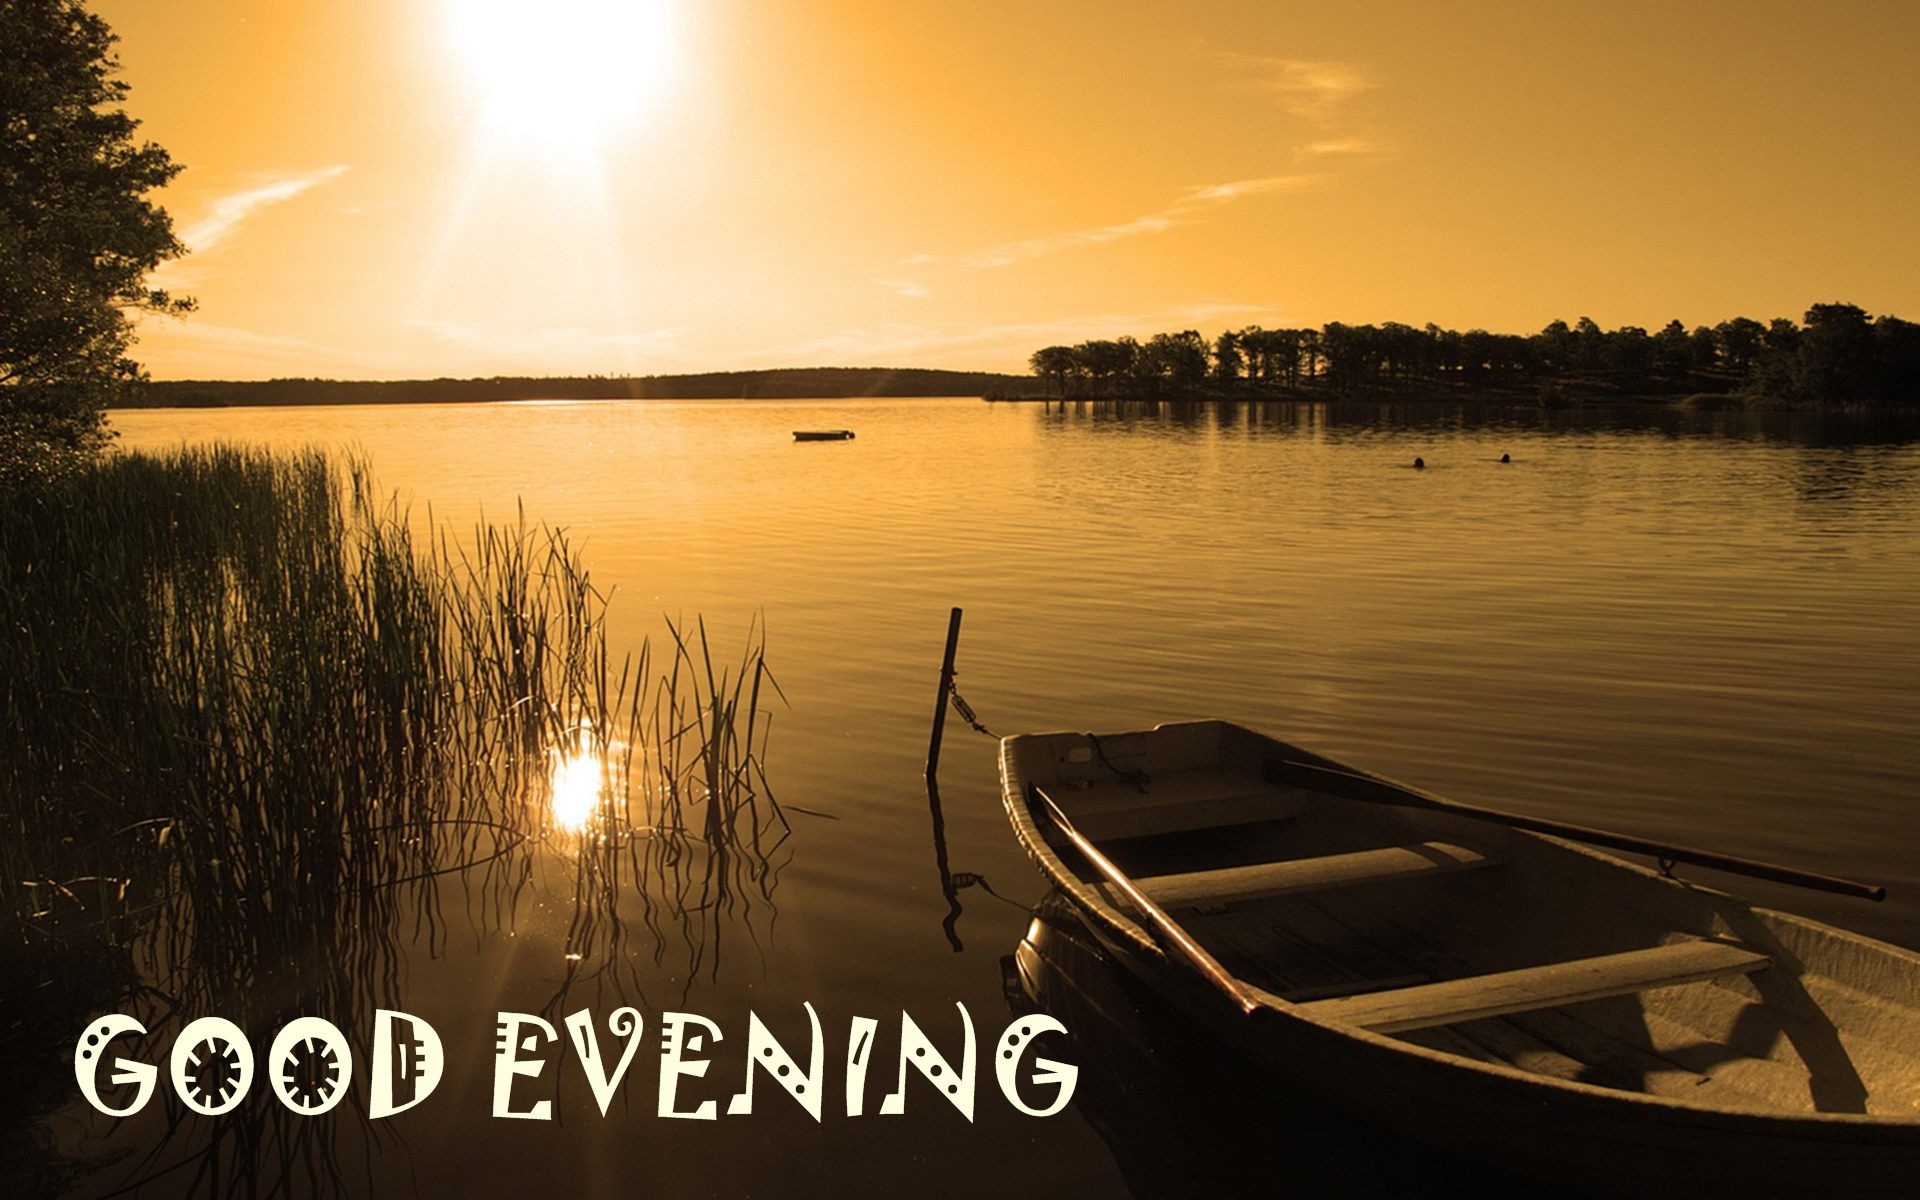 good evening whatsapp hd image free download